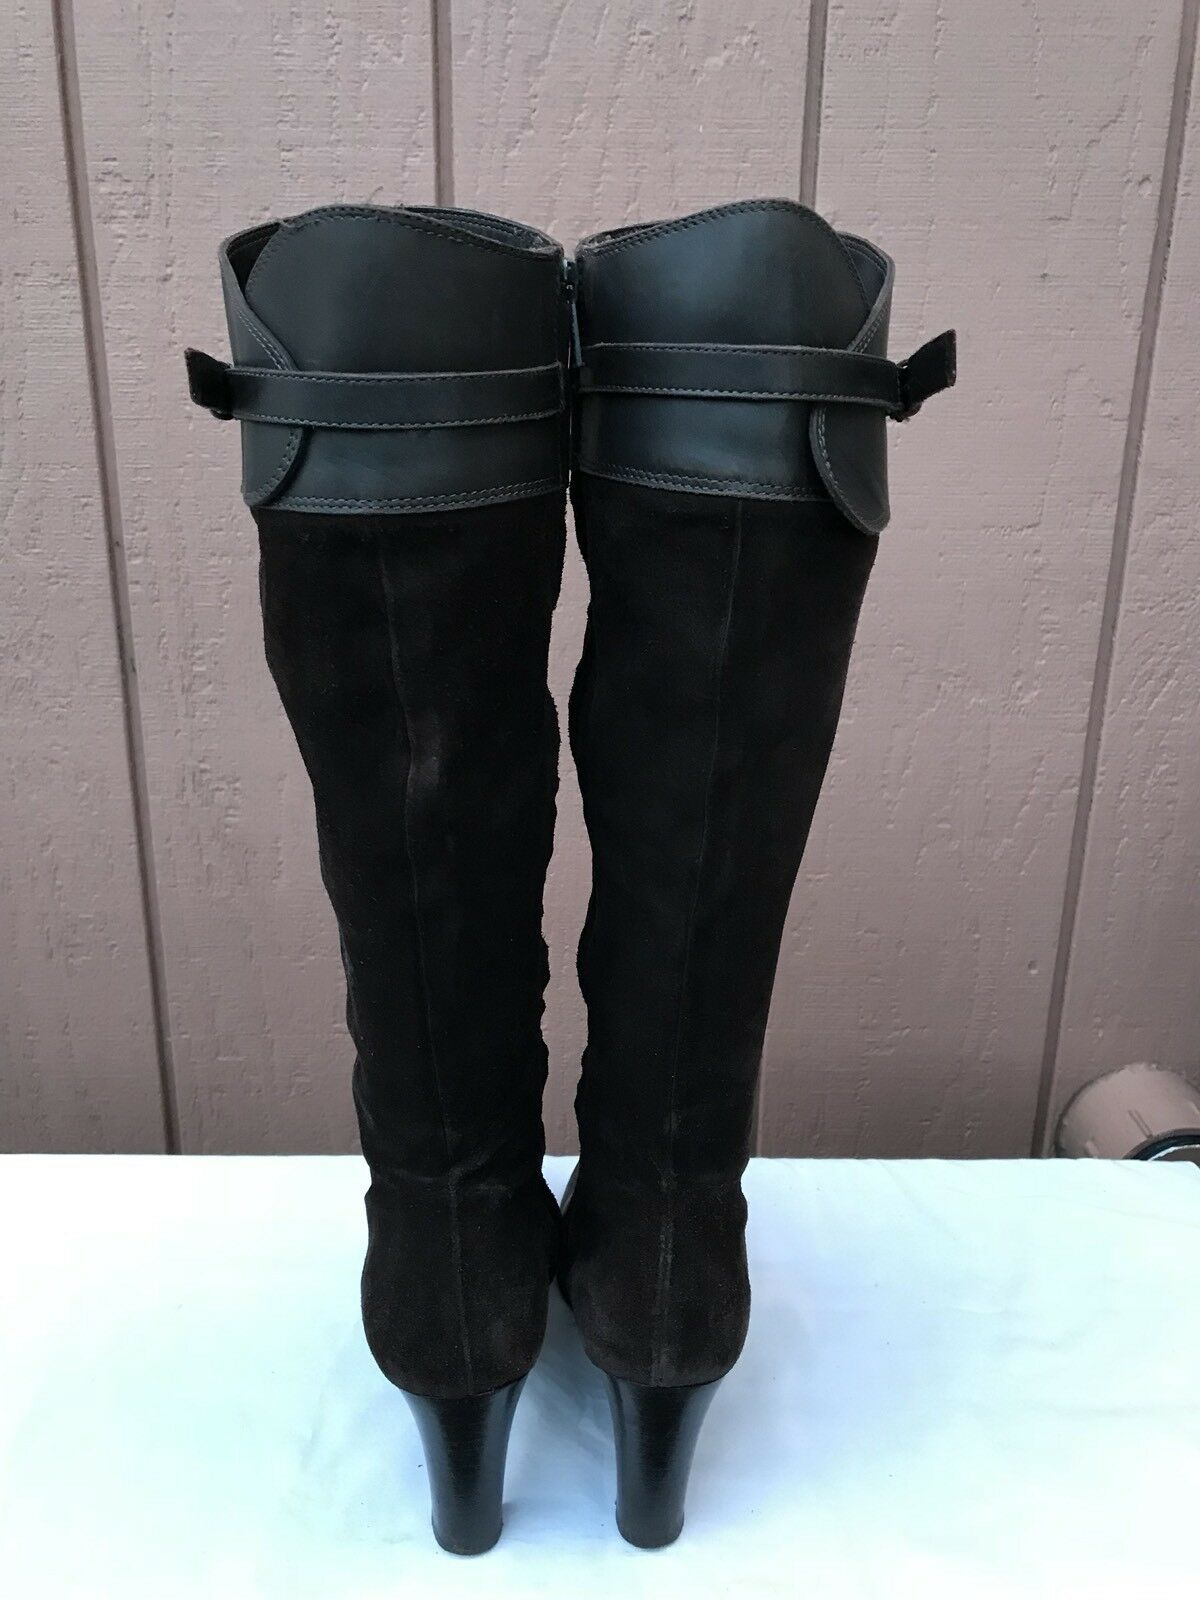 J.Crew Boots Brown Suede and Leather Knee High Heel Fashion Boots J.Crew Size US 6.5 ITALY 10aece